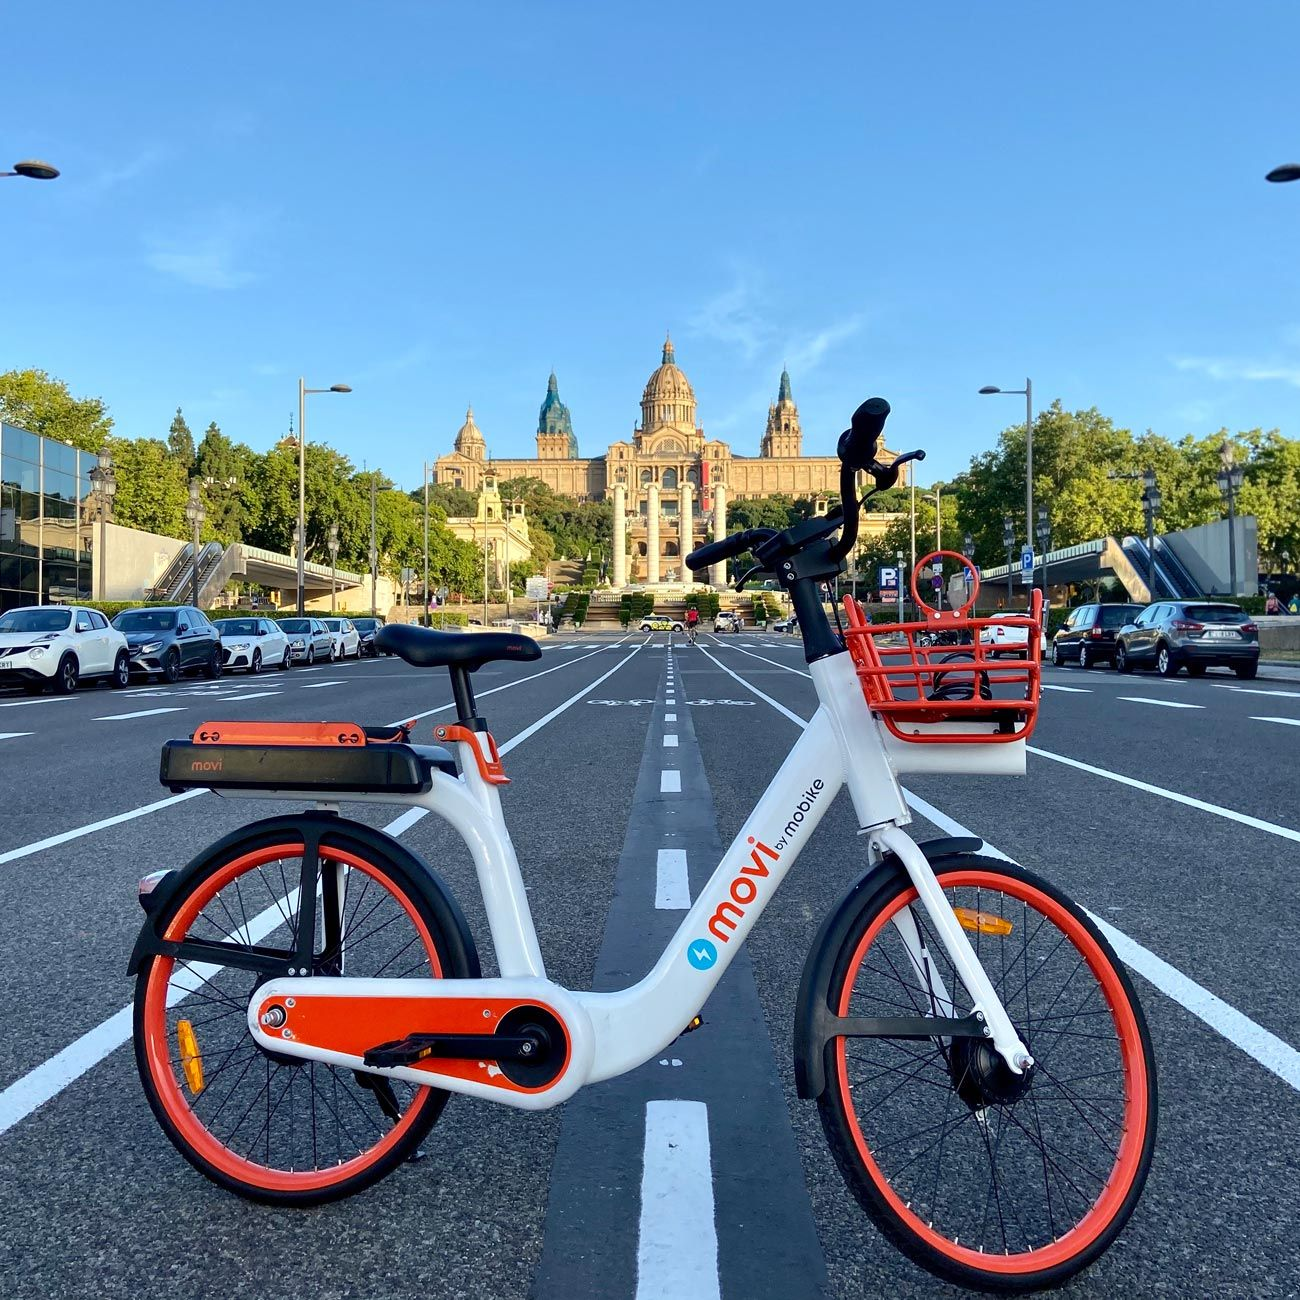 movi-bike-sharing-commitment-to-communities-1x1